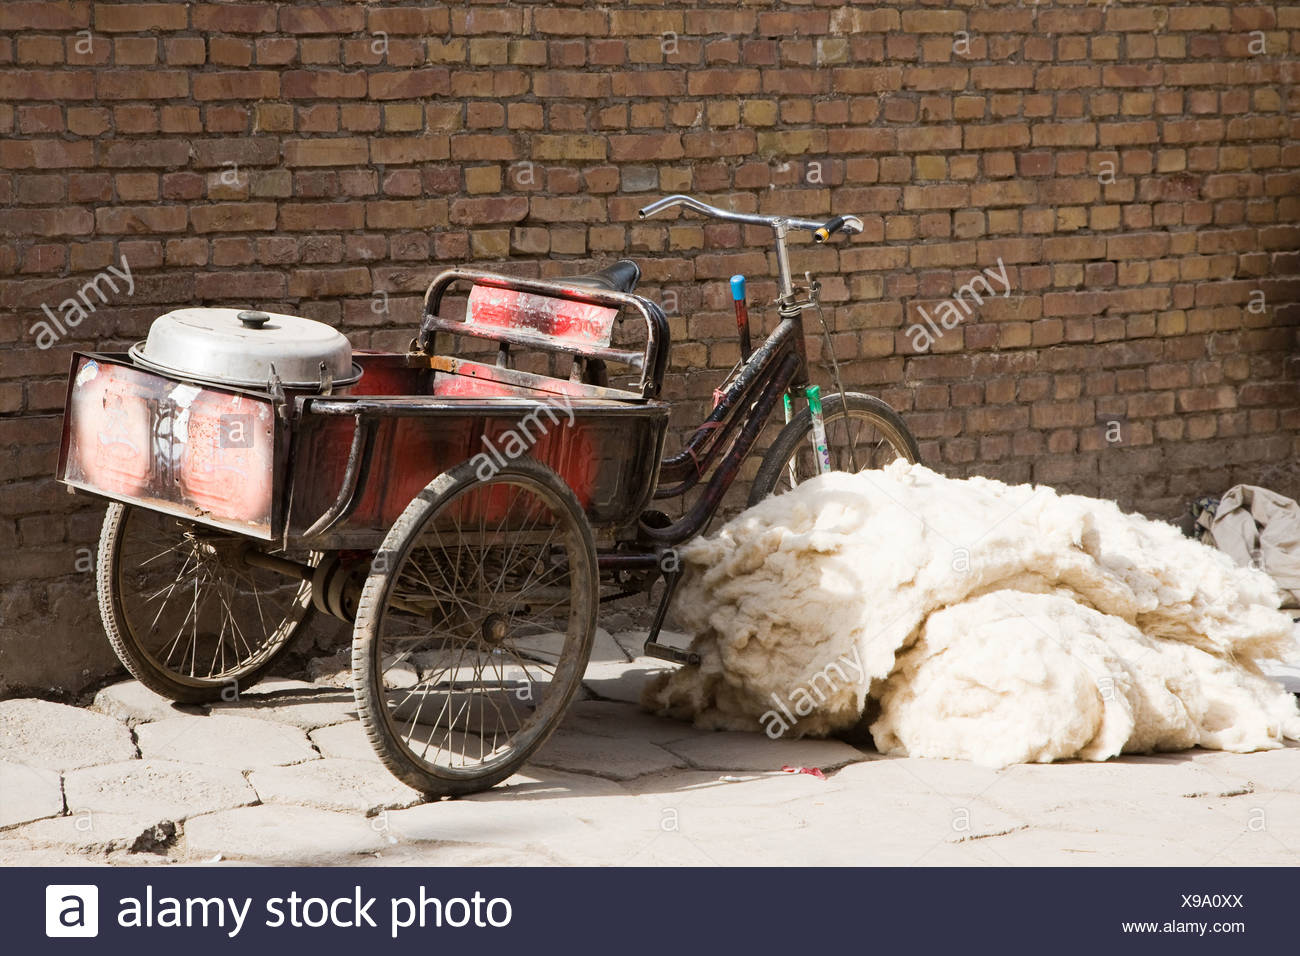 Bicycle next to pile of wool on footpath - Stock Image